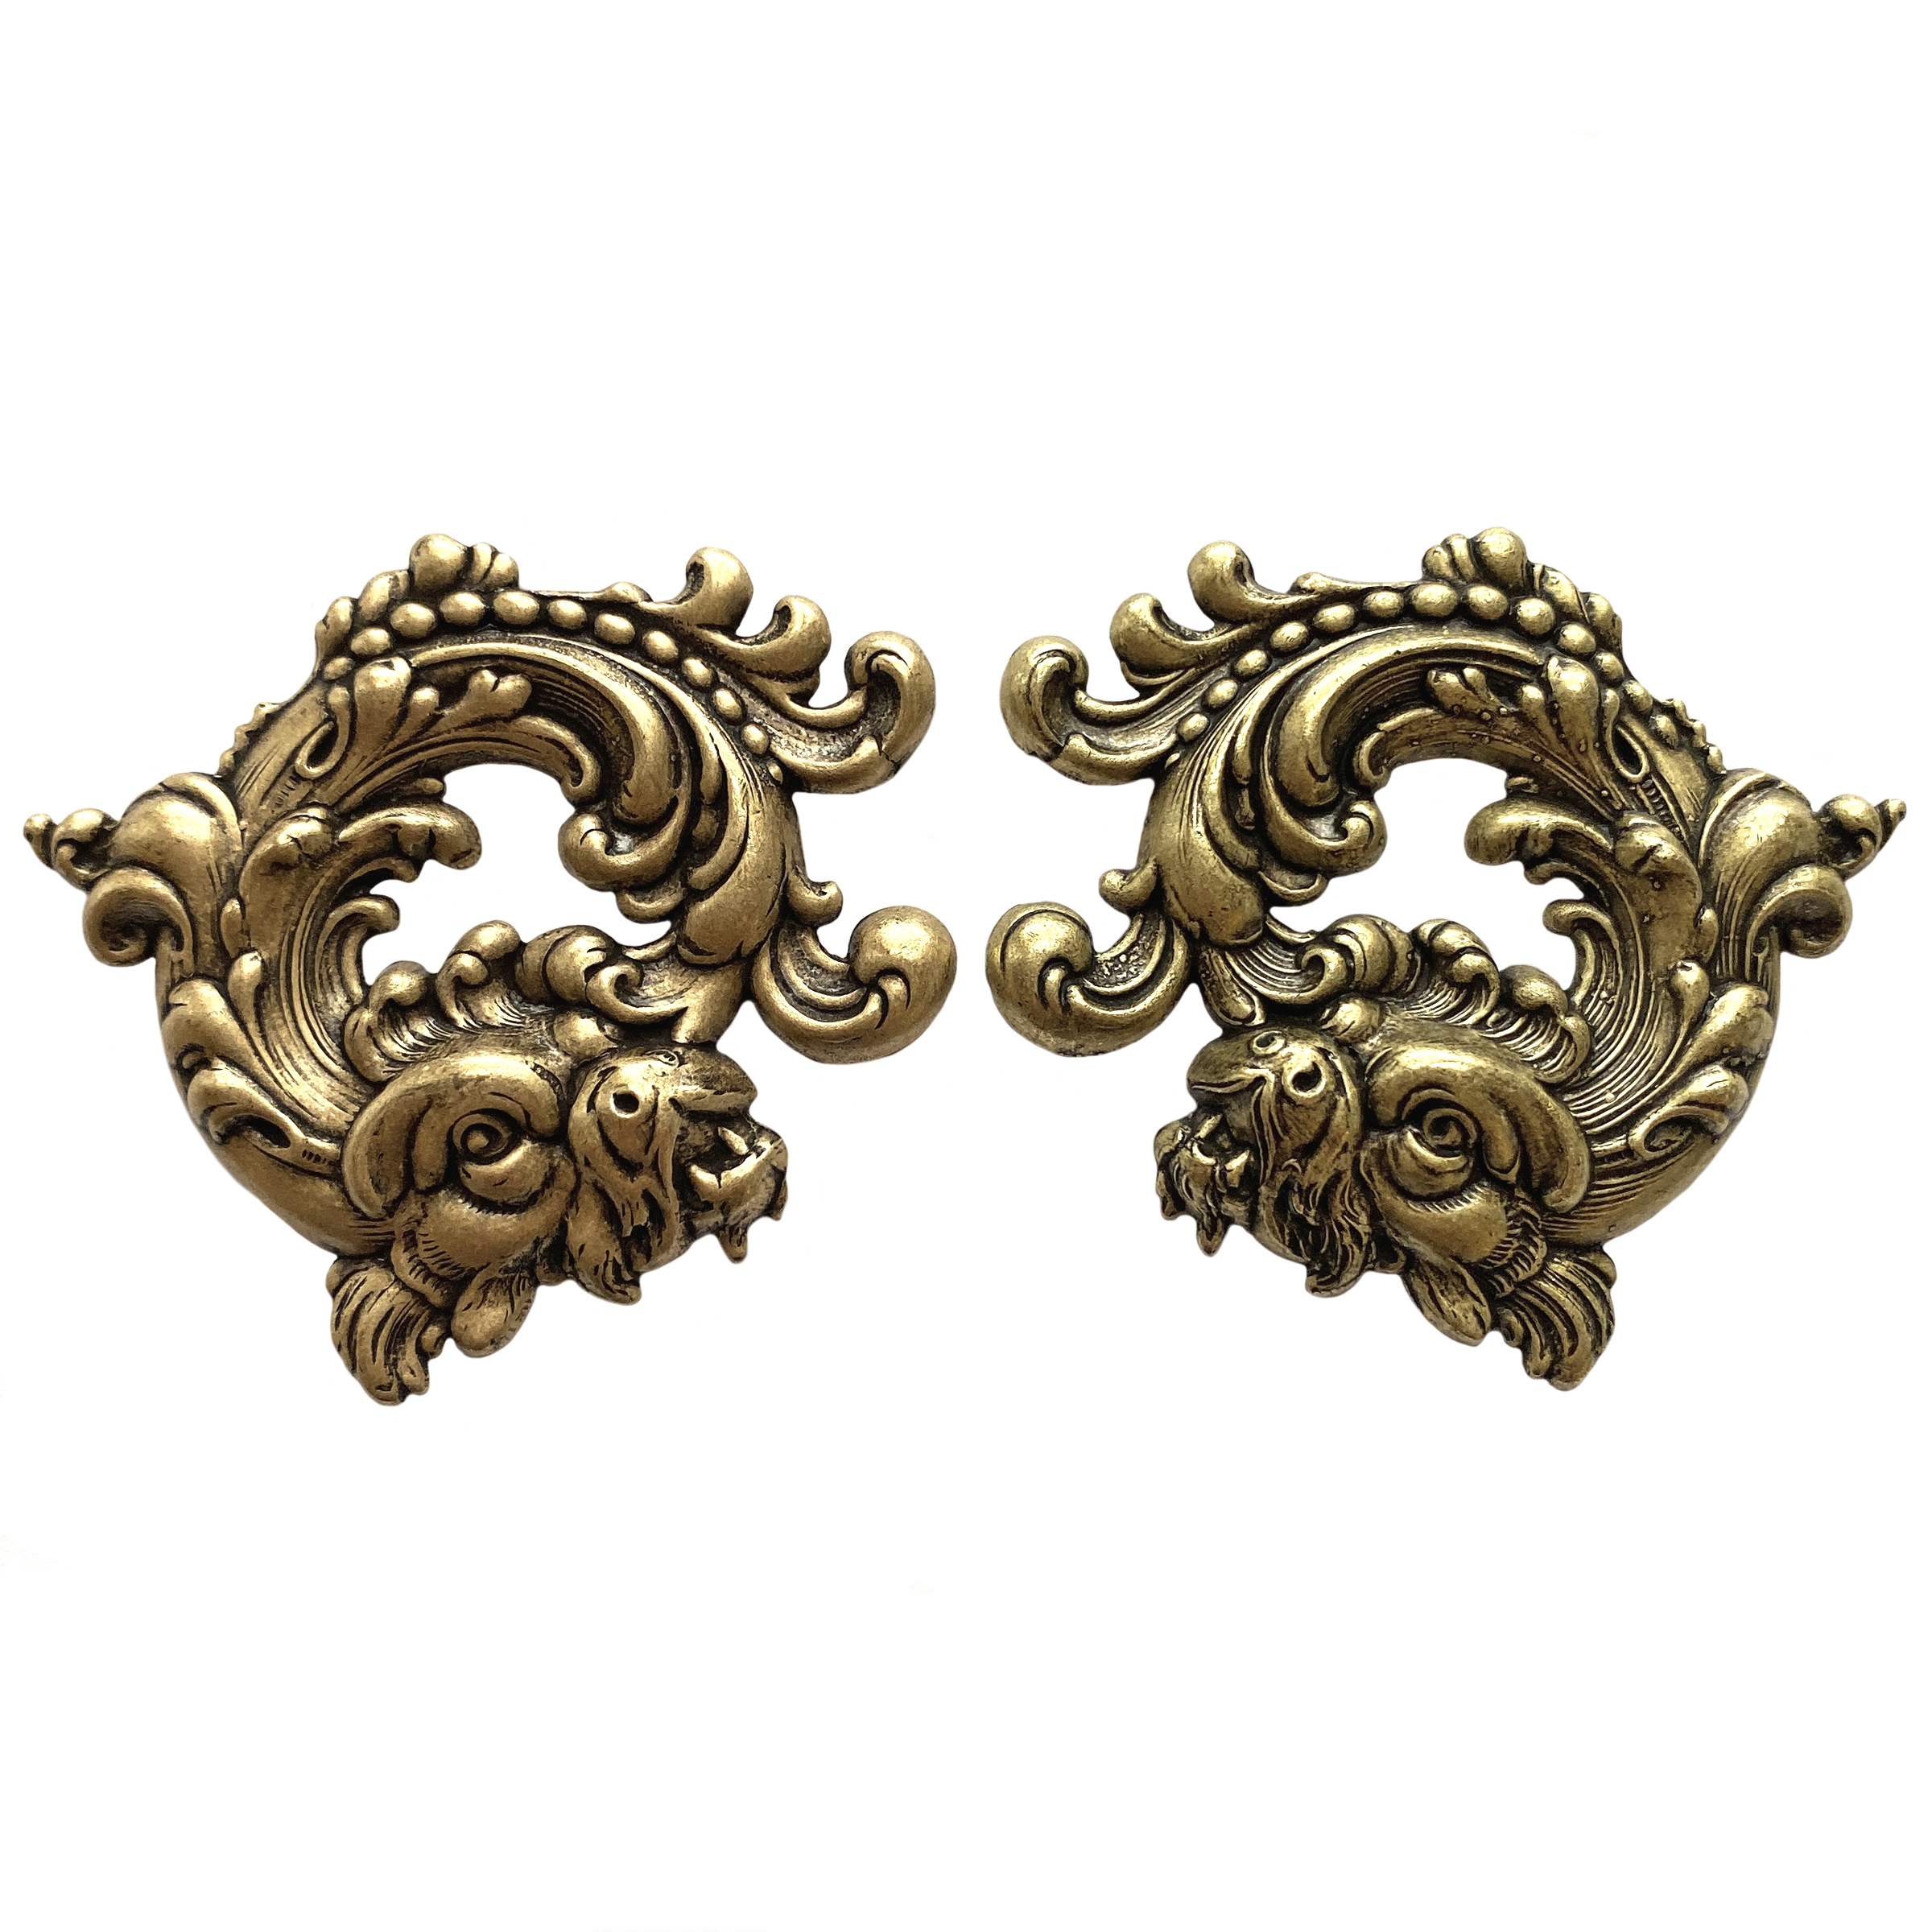 steampunk curved dragons, brass ox, antique brass, steampunk art, dragons, dragon jewelry, goth jewelry, 45x50mm, left and right dragons, curved dragon, dragon stamping, jewelry making, vintage supplies, jewelry supplies, B'sue Boutiques, 01696